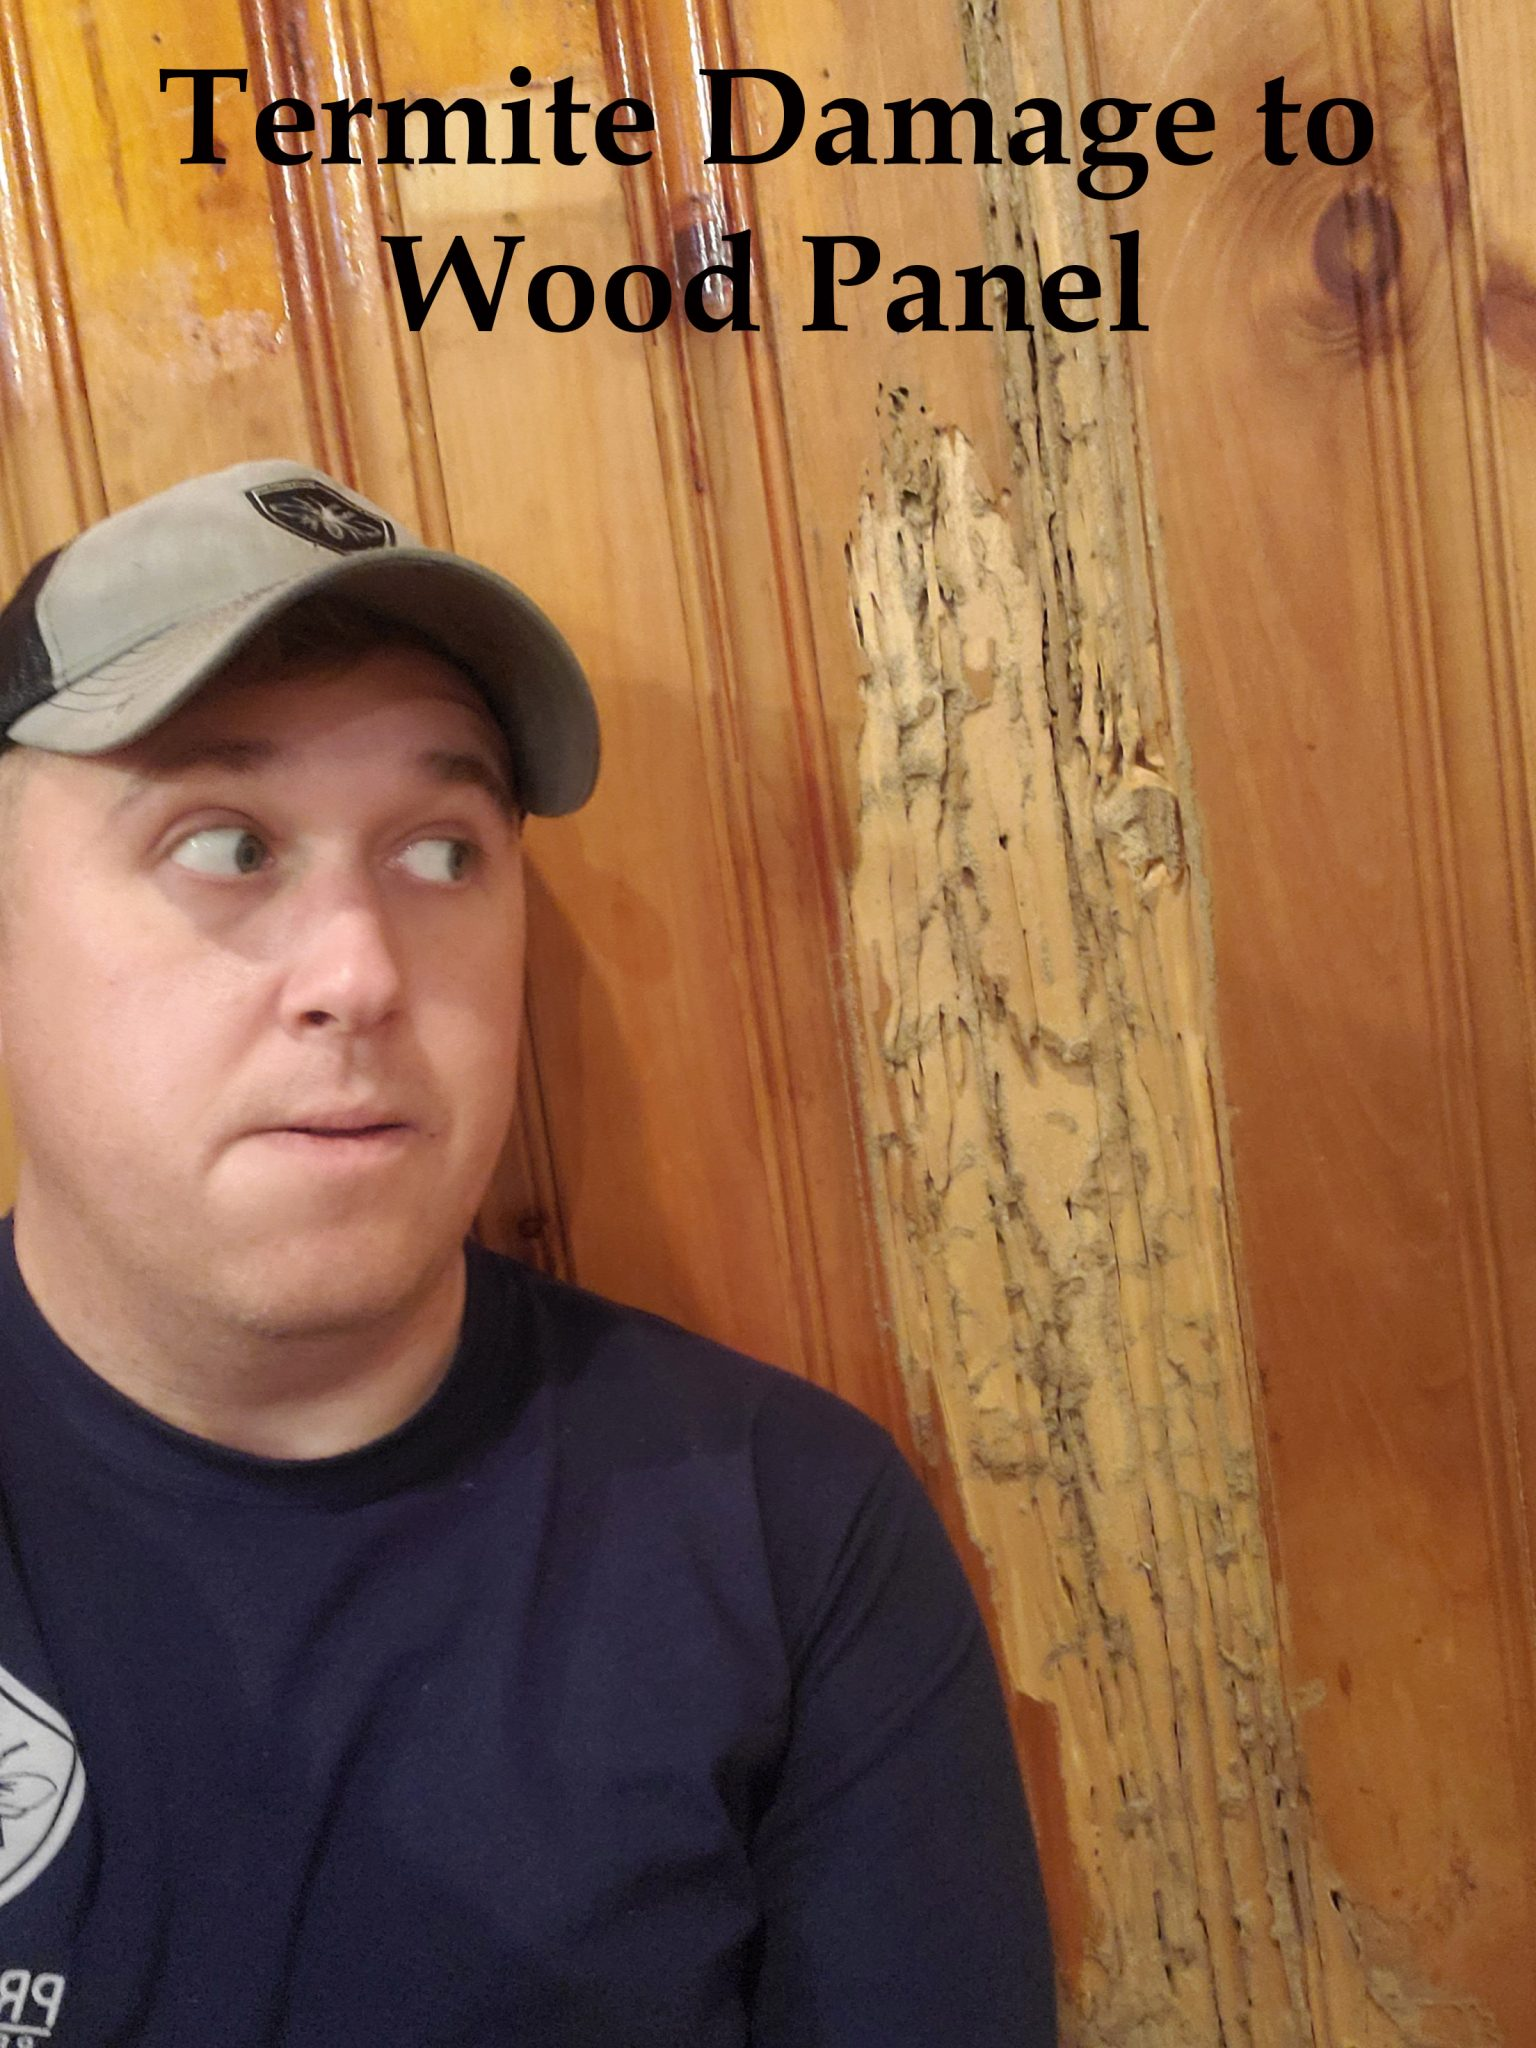 termite damage to wood paneling